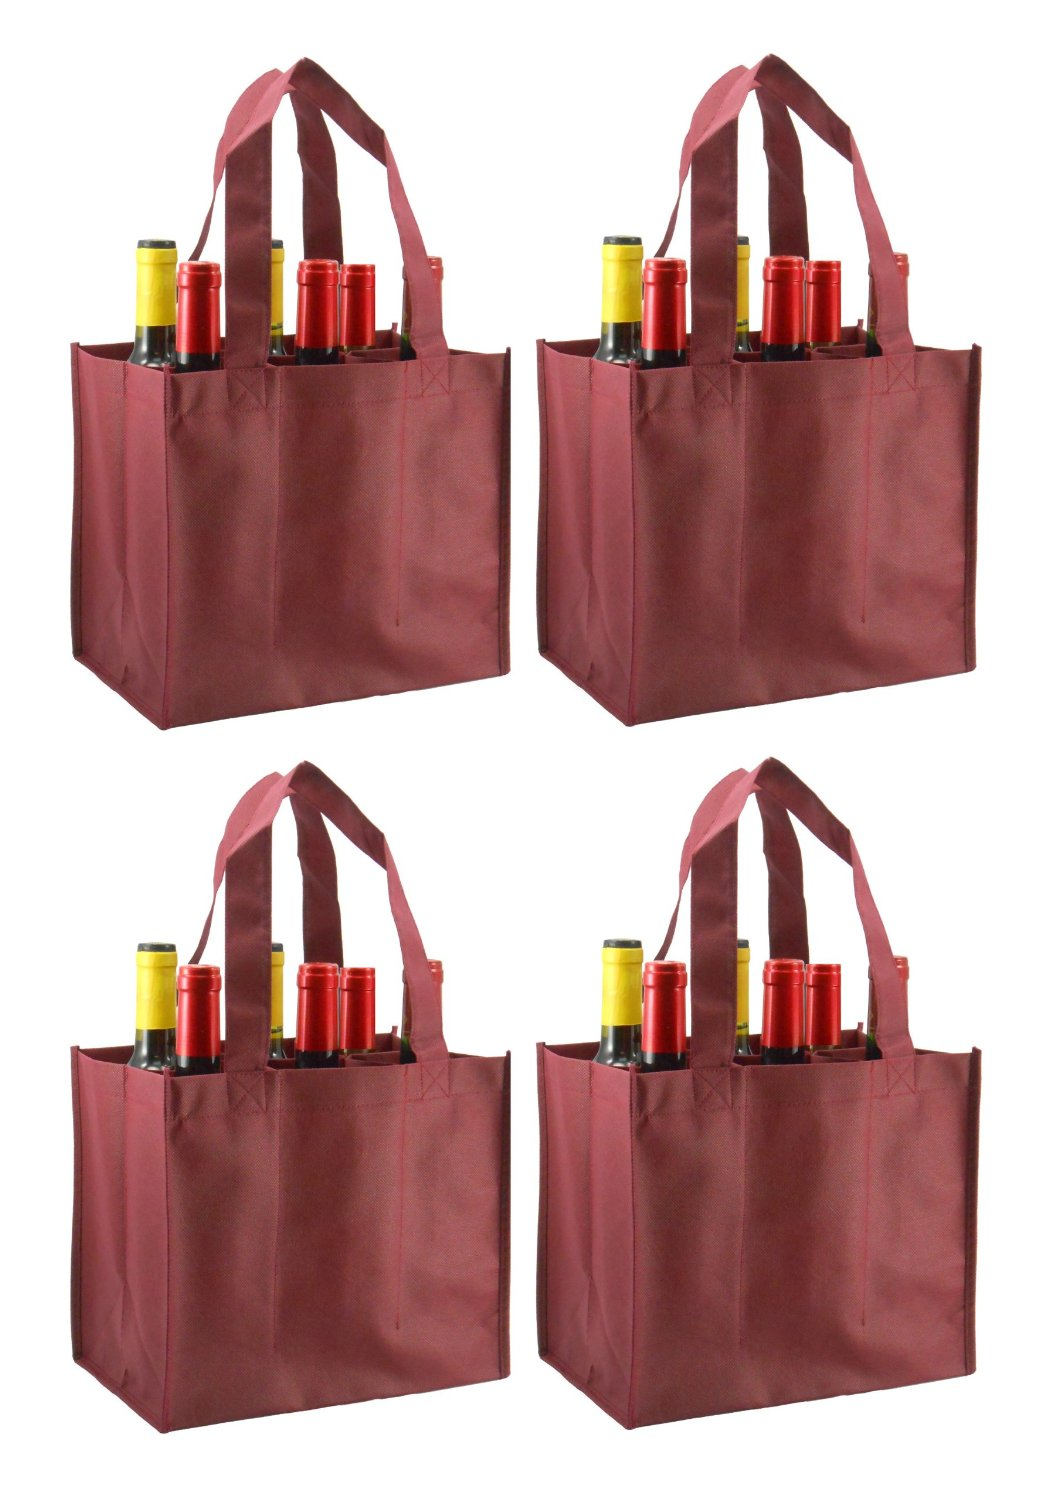 6 Bottle Wine Carrier - 4